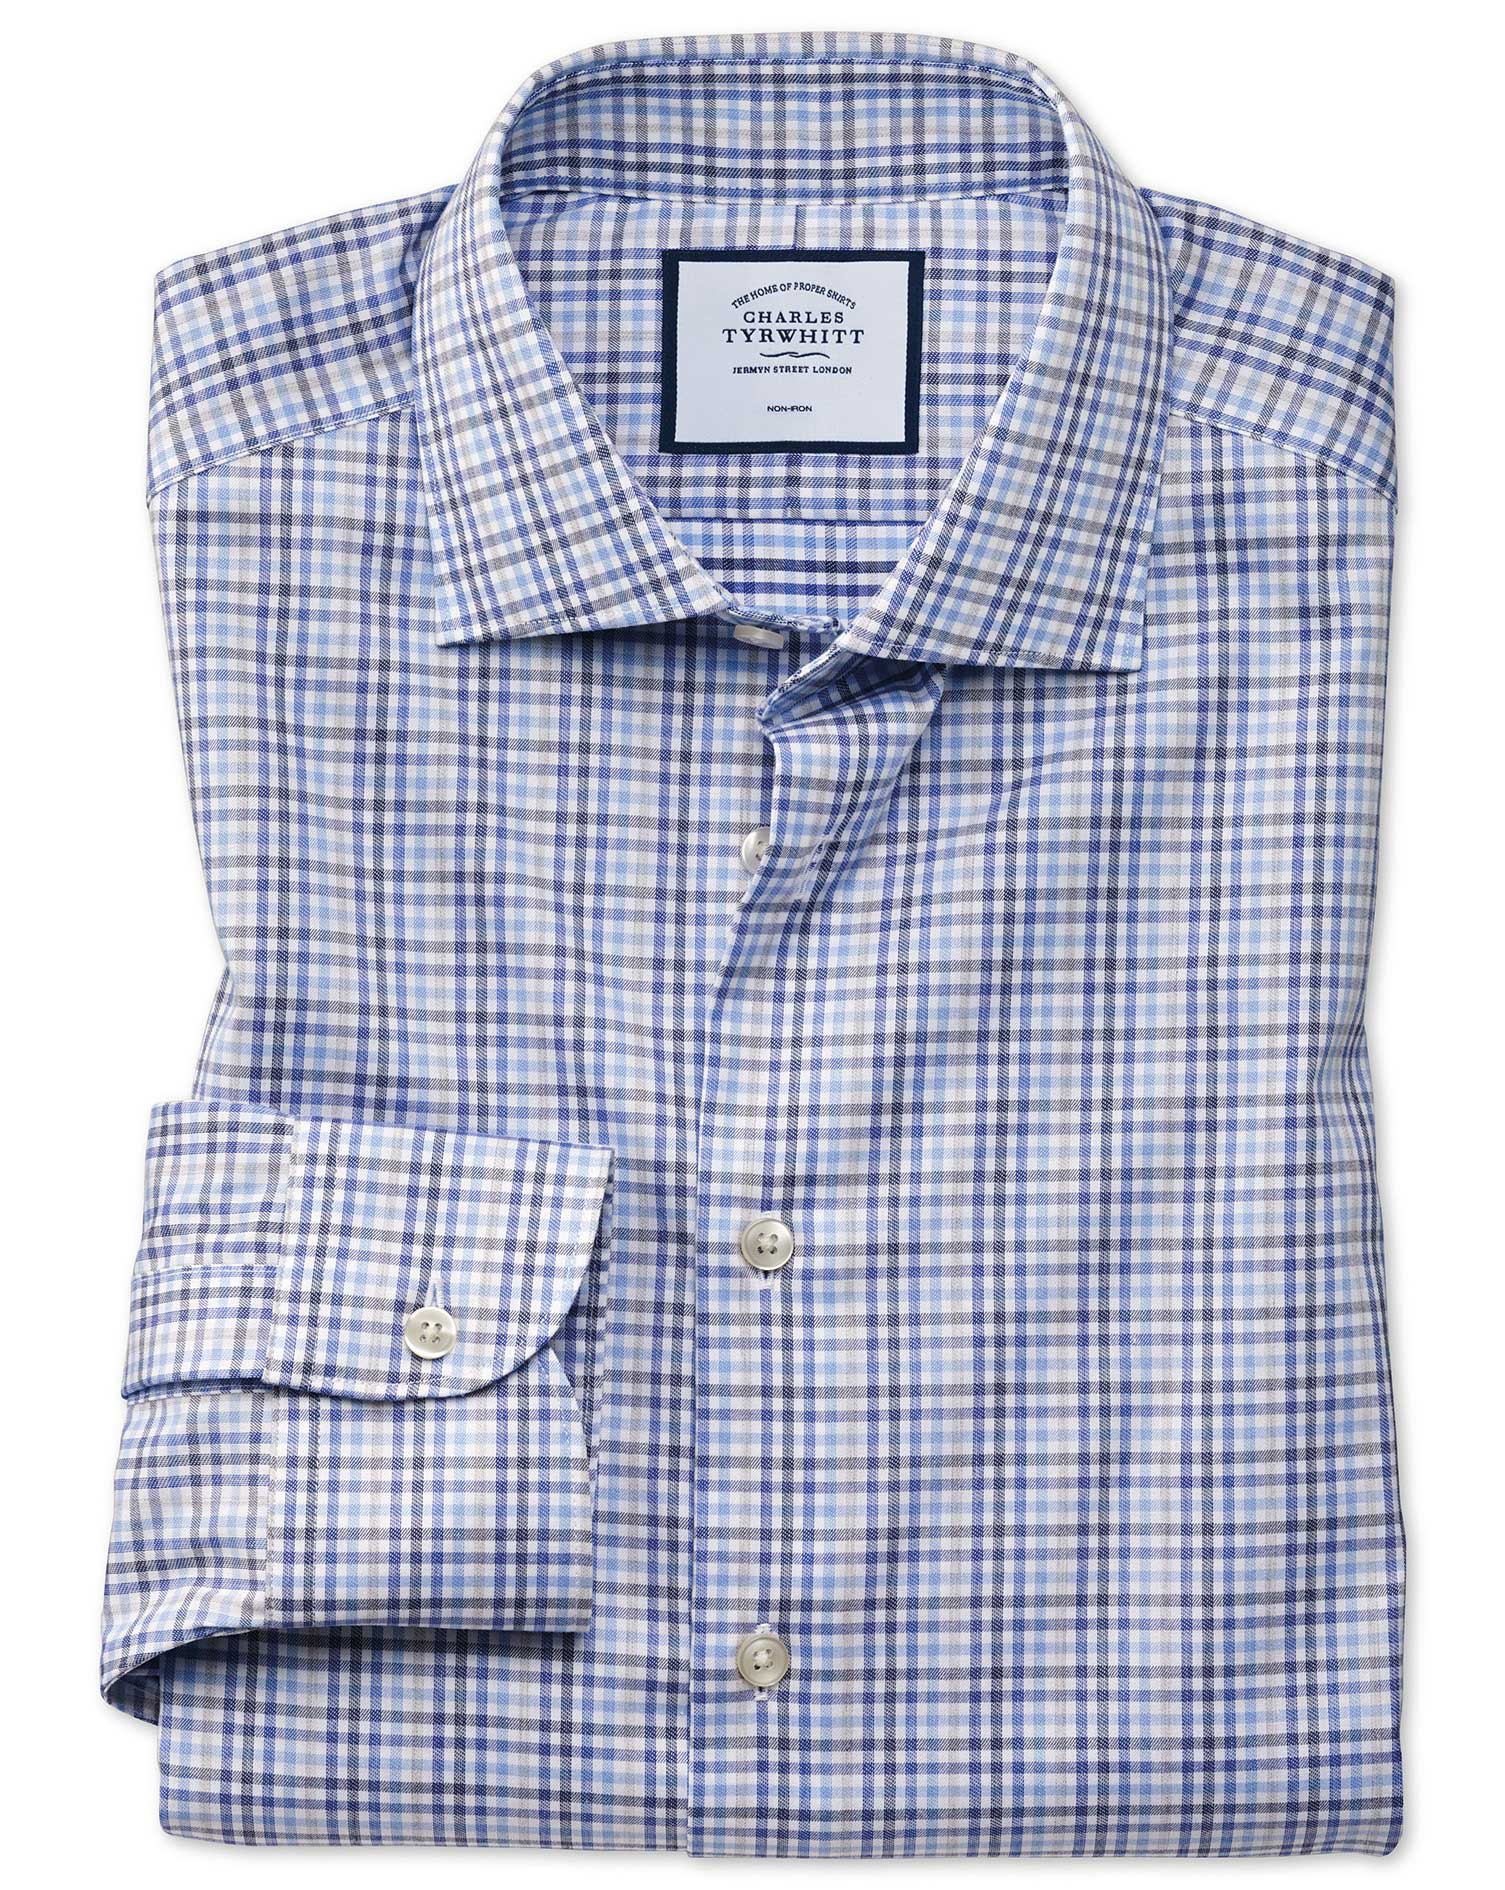 Slim Fit Business Casual Non-Iron Blue and Grey Check Cotton Formal Shirt Single Cuff Size 15.5/37 b